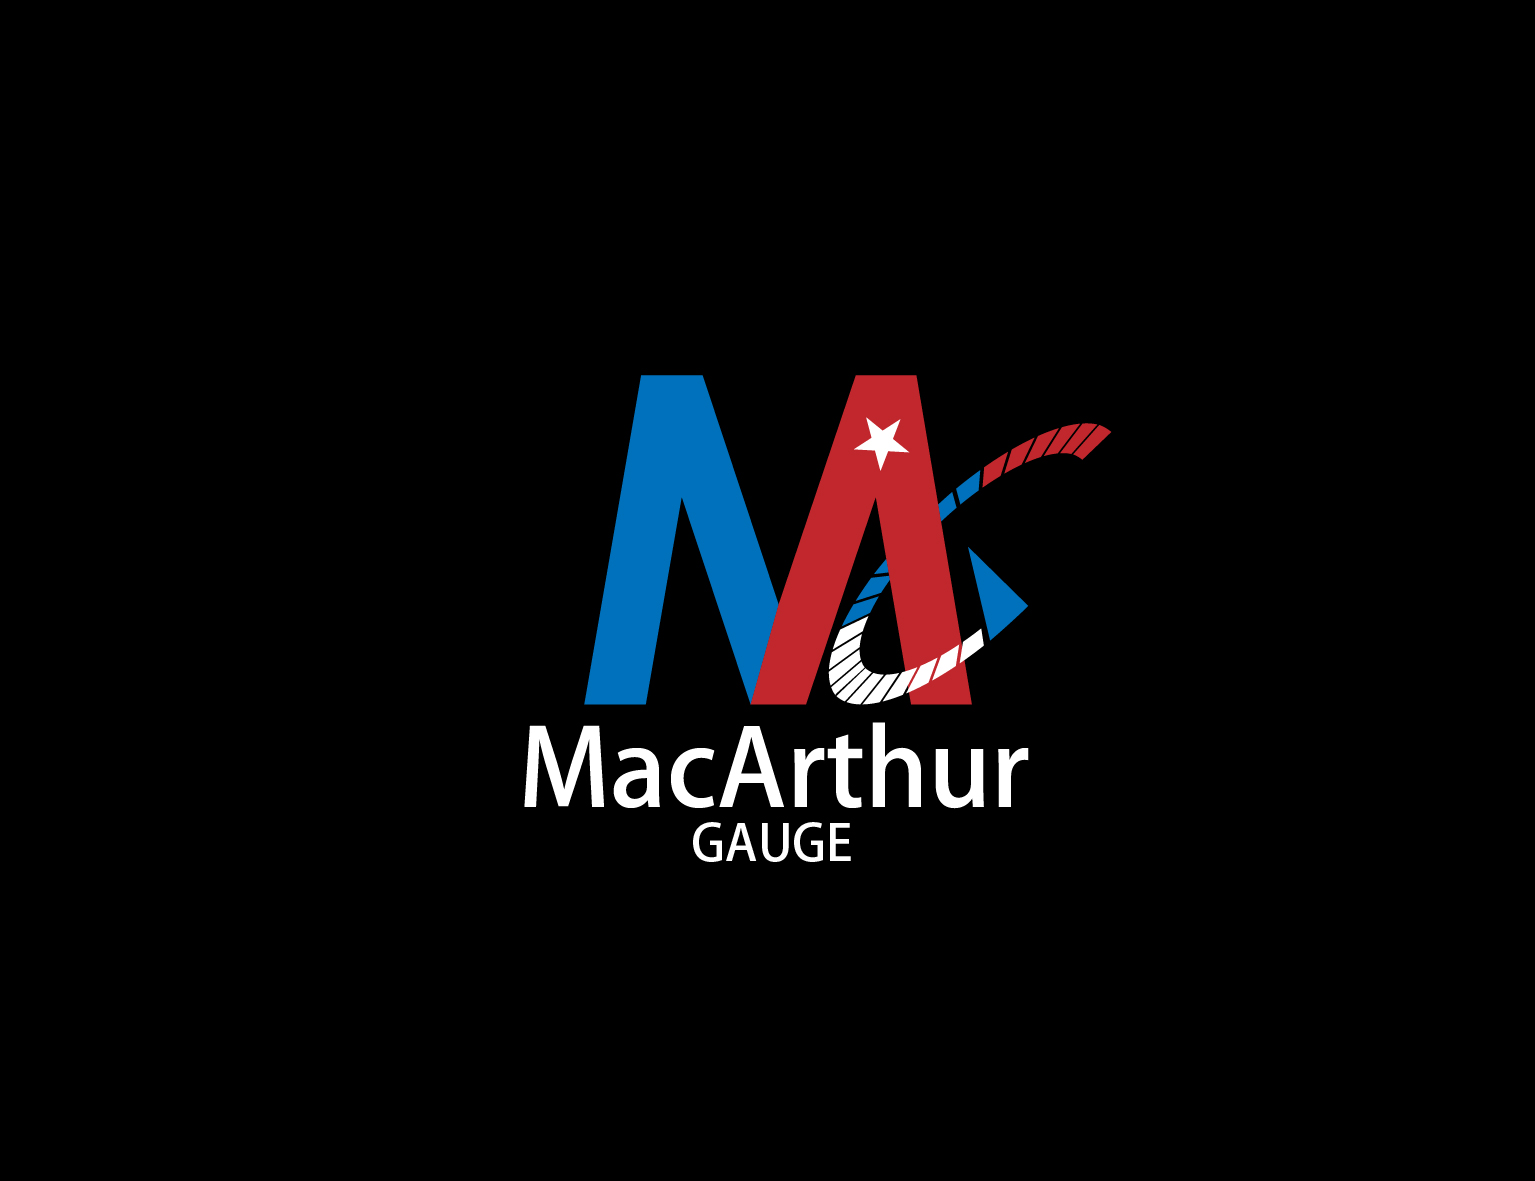 Logo Design by 3draw - Entry No. 207 in the Logo Design Contest Fun Logo Design for MacArthur Gauge.